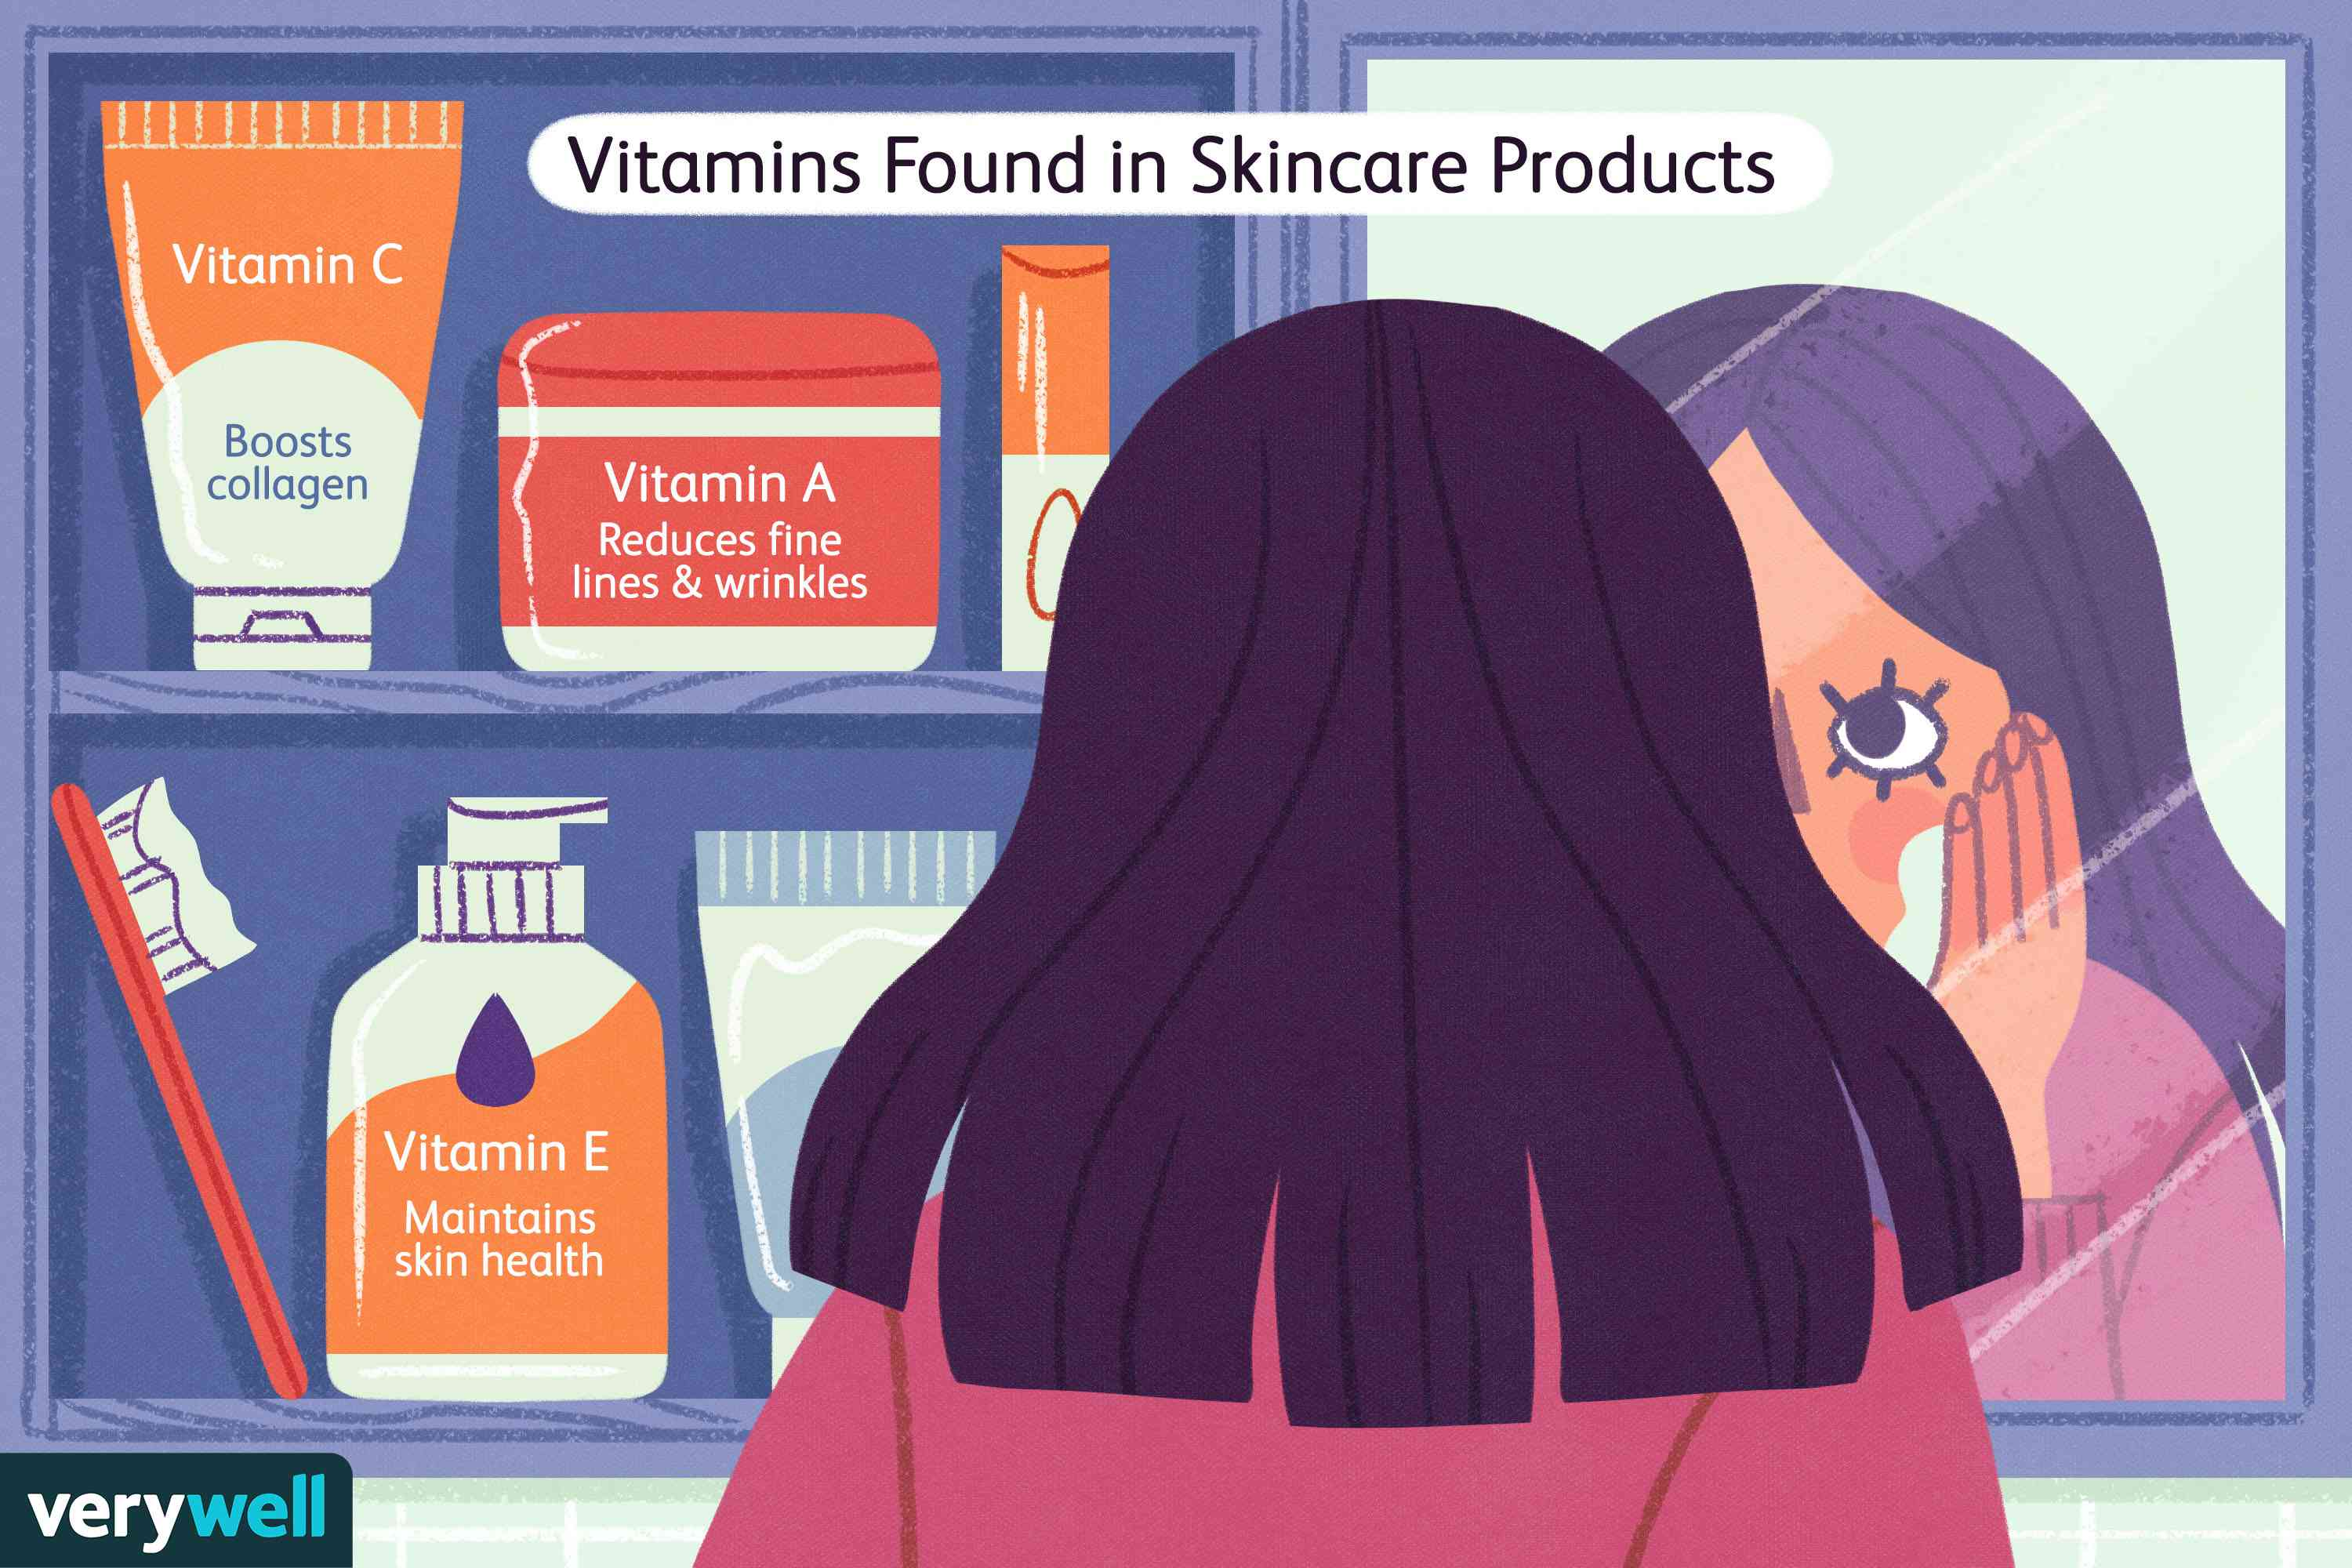 Vitamins Found in Skincare Products